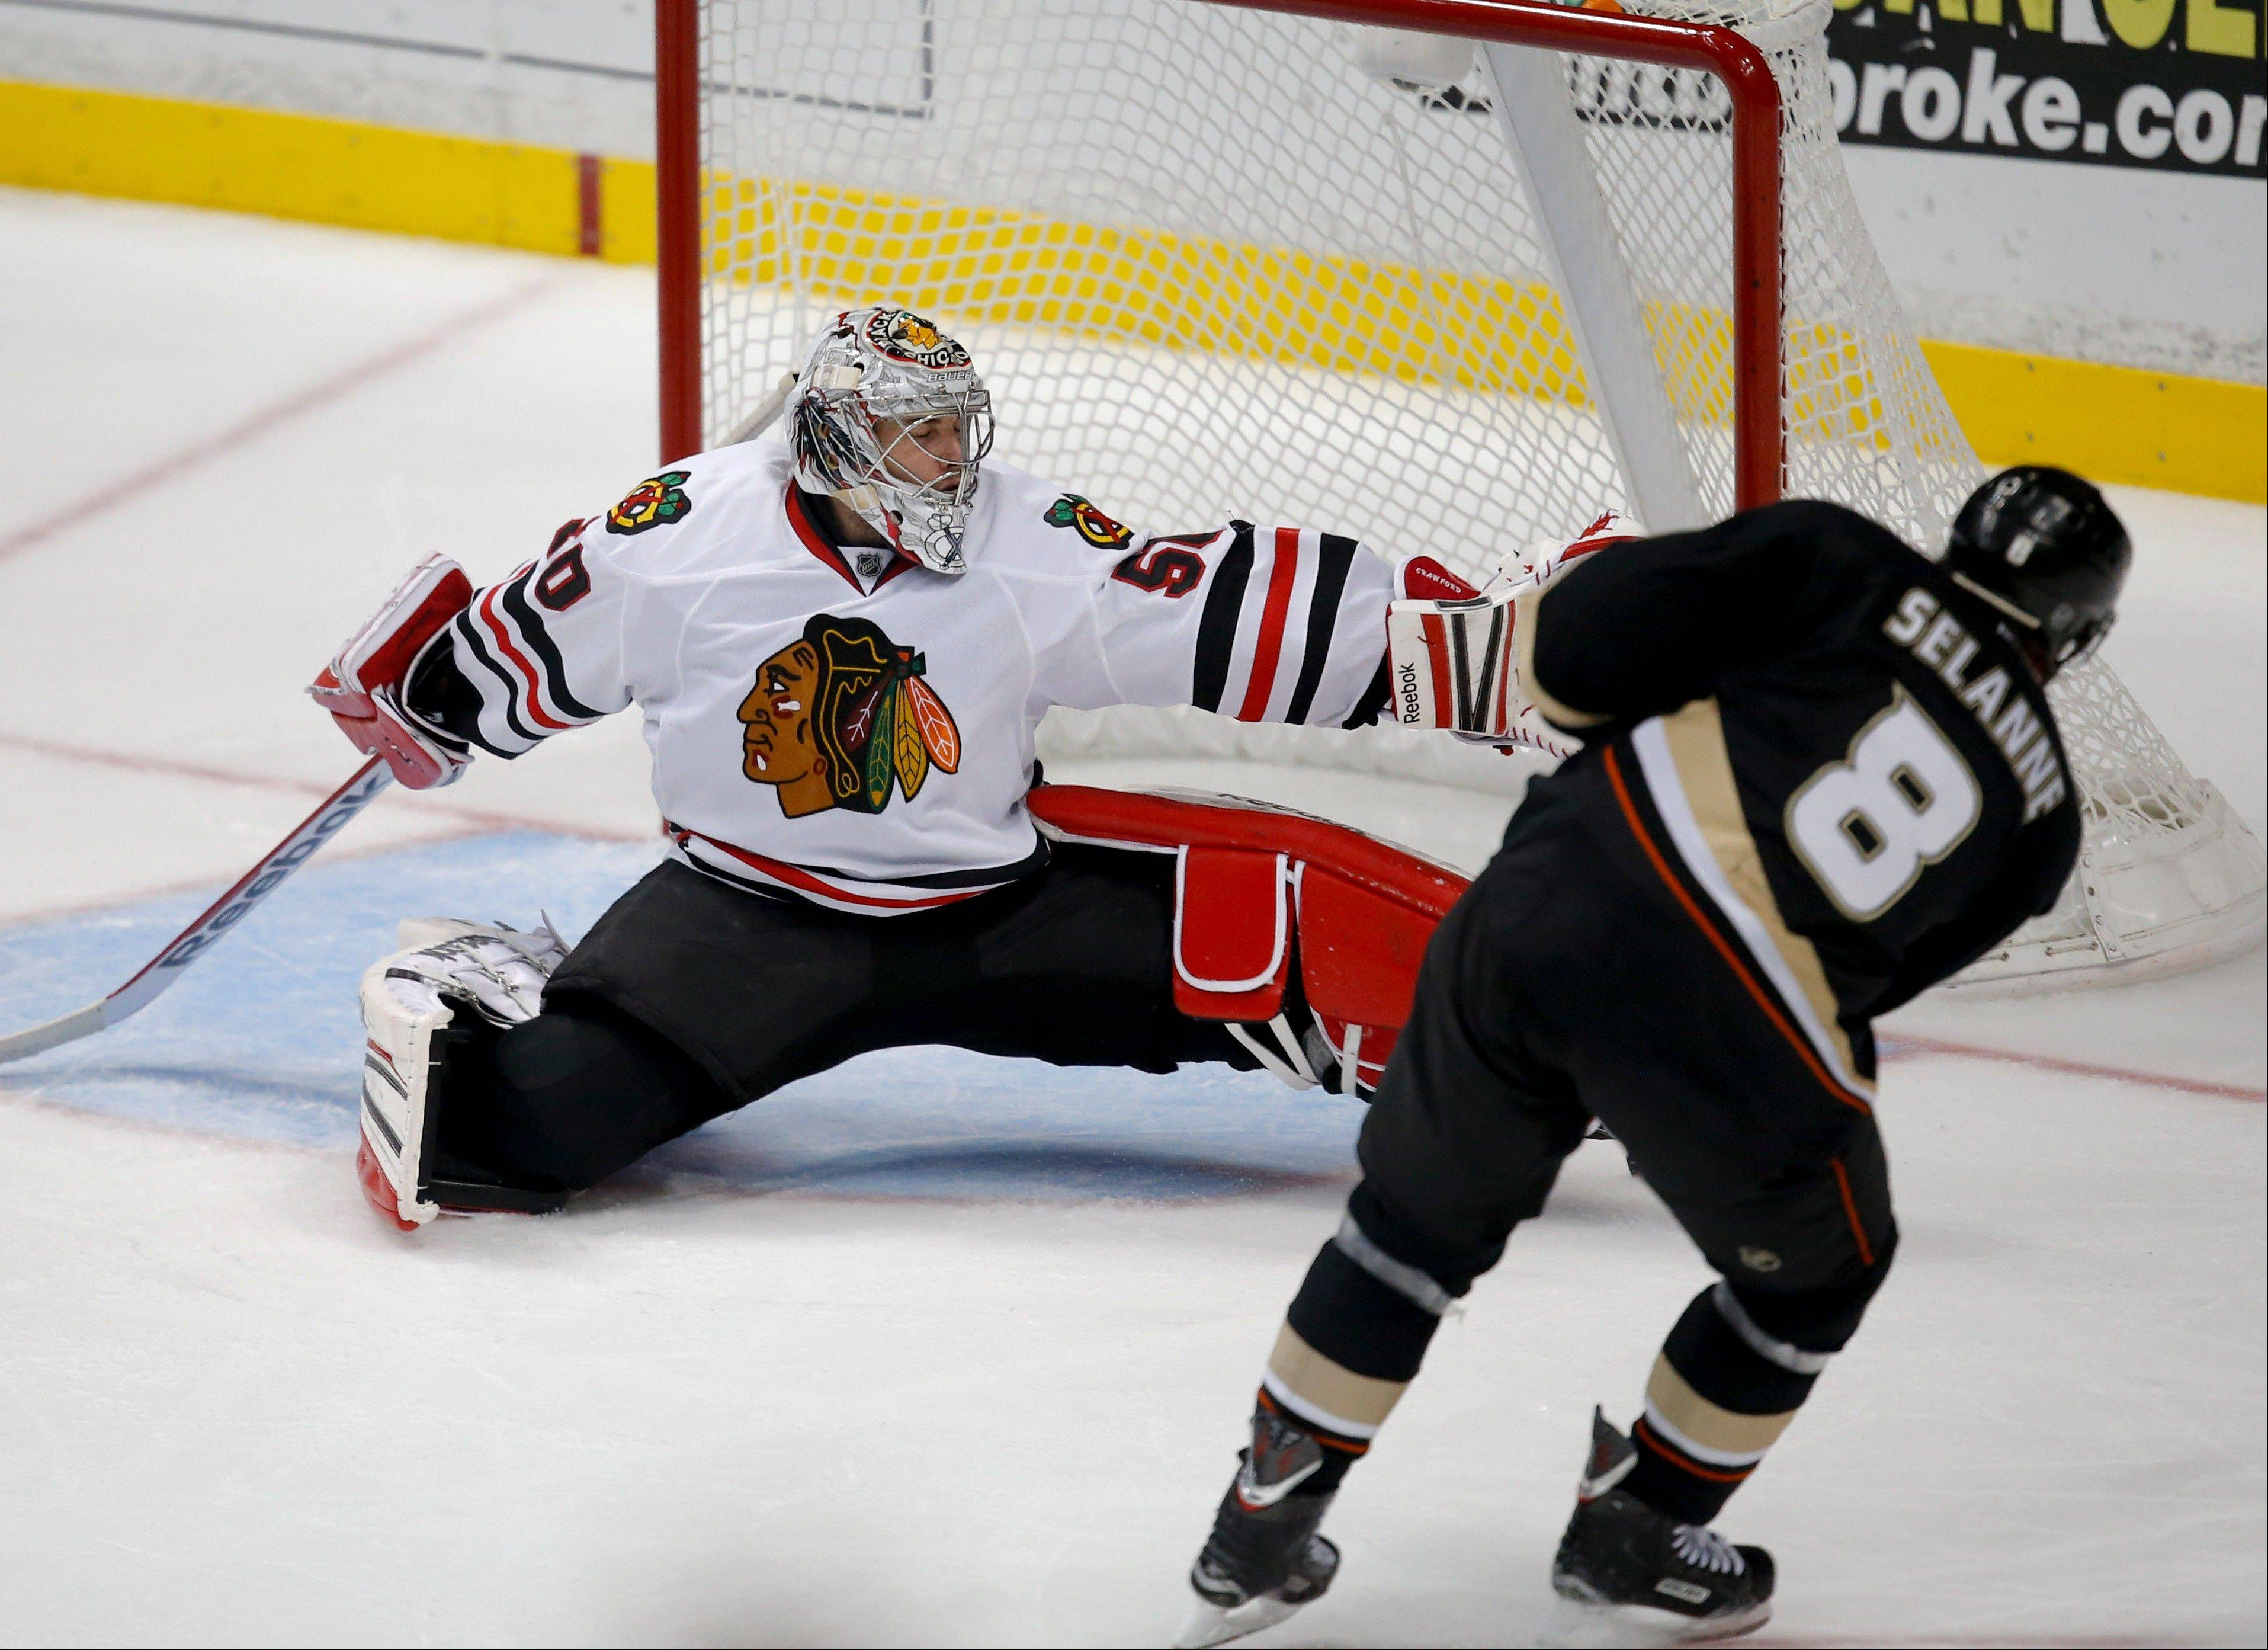 Anaheim Ducks' Teemu Selanne, foreground, of Finland, scores against Chicago Blackhawks goalie Corey Crawford during the third period of an NHL hockey game in Anaheim, Calif., Wednesday, March 20, 2013. The Ducks won 4-2.